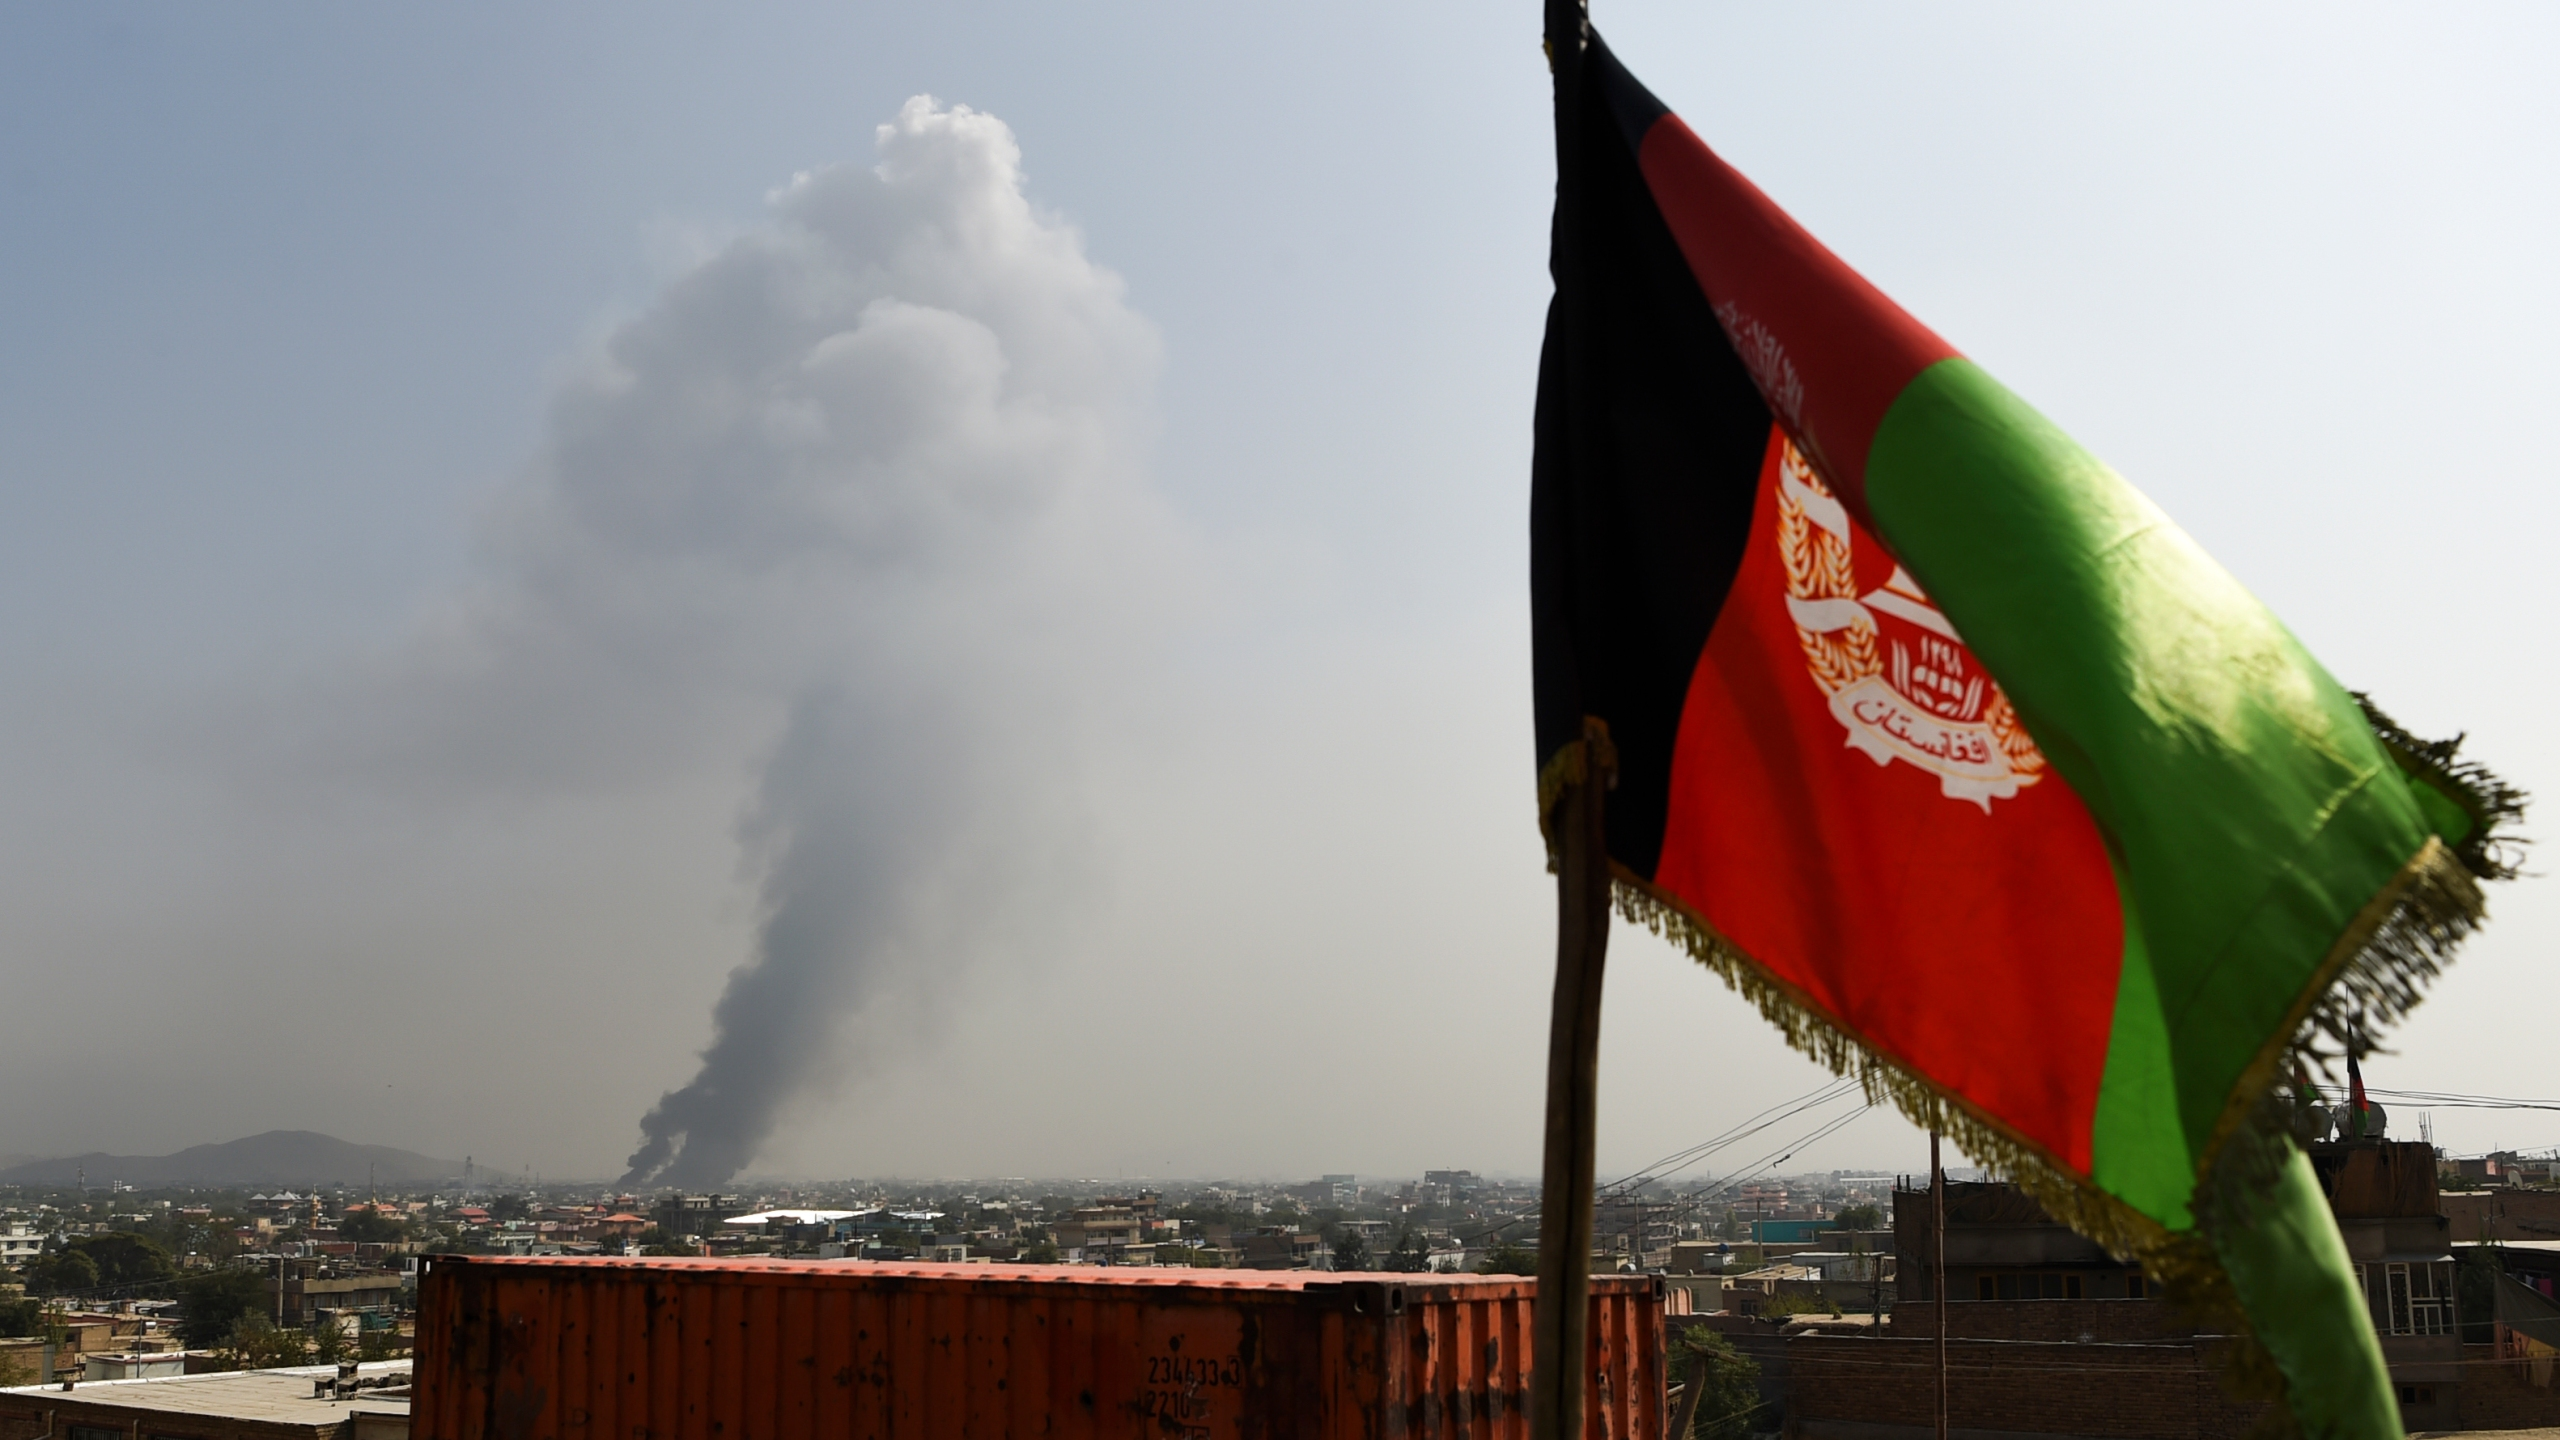 Smoke rises from the site of an attack after a massive explosion the night before near the Green Village in Kabul on Sept. 3, 2019. (Credit: WAKIL KOHSAR/AFP/Getty Images)